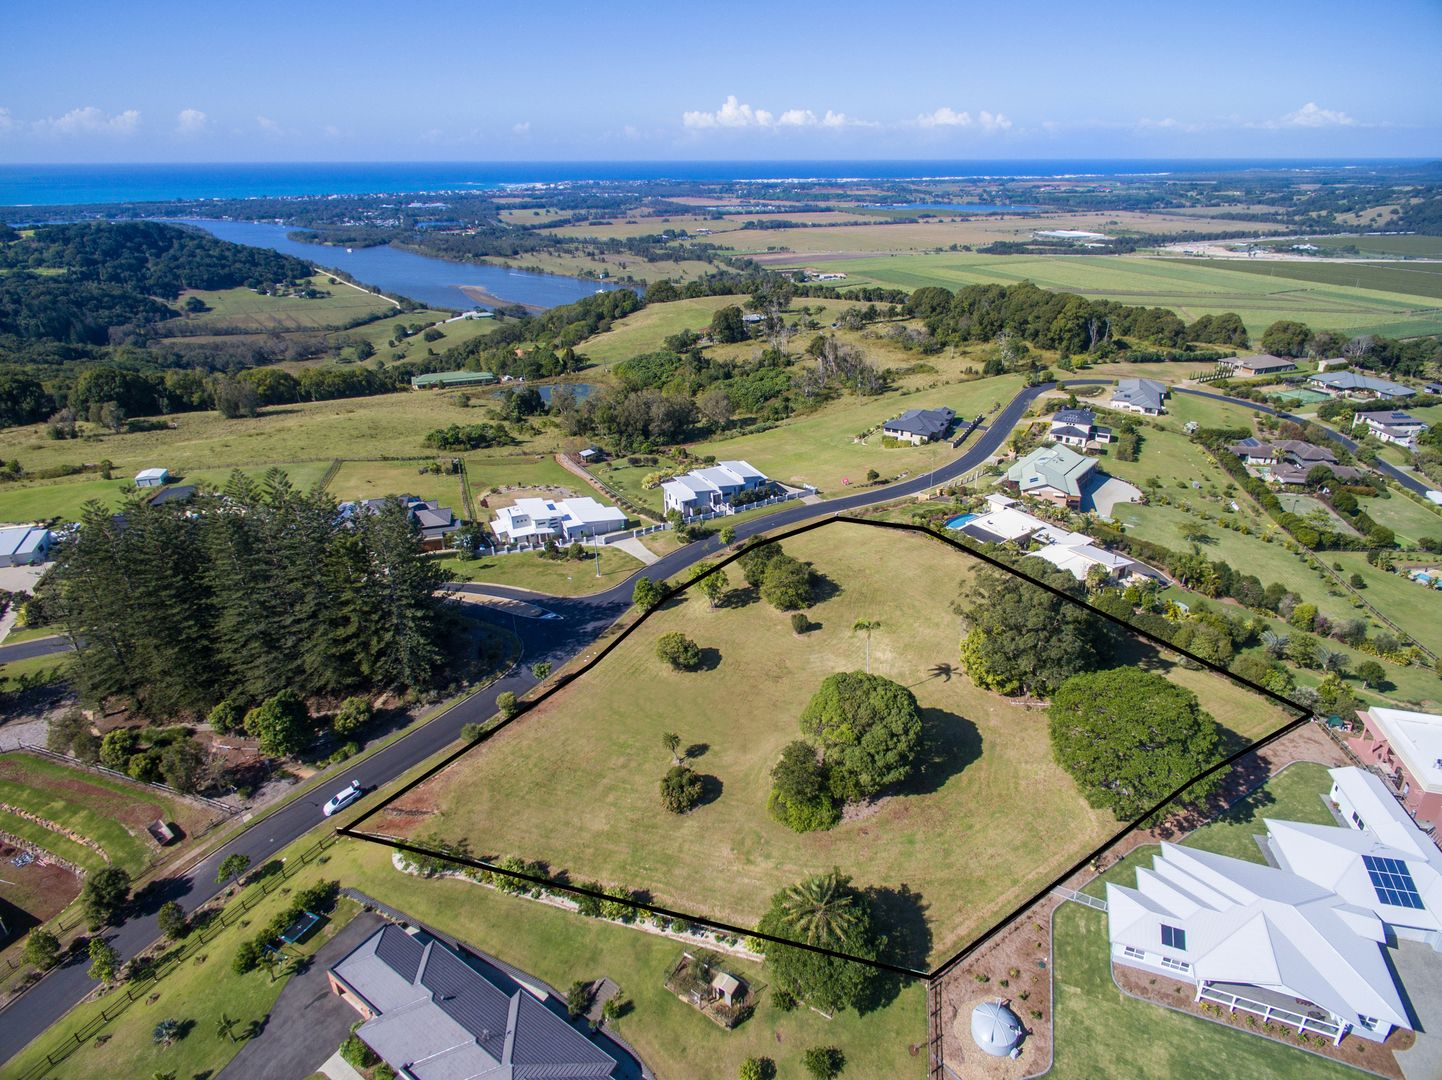 Lot 30, 6 Sunnycrest Drive, Terranora NSW 2486, Image 1